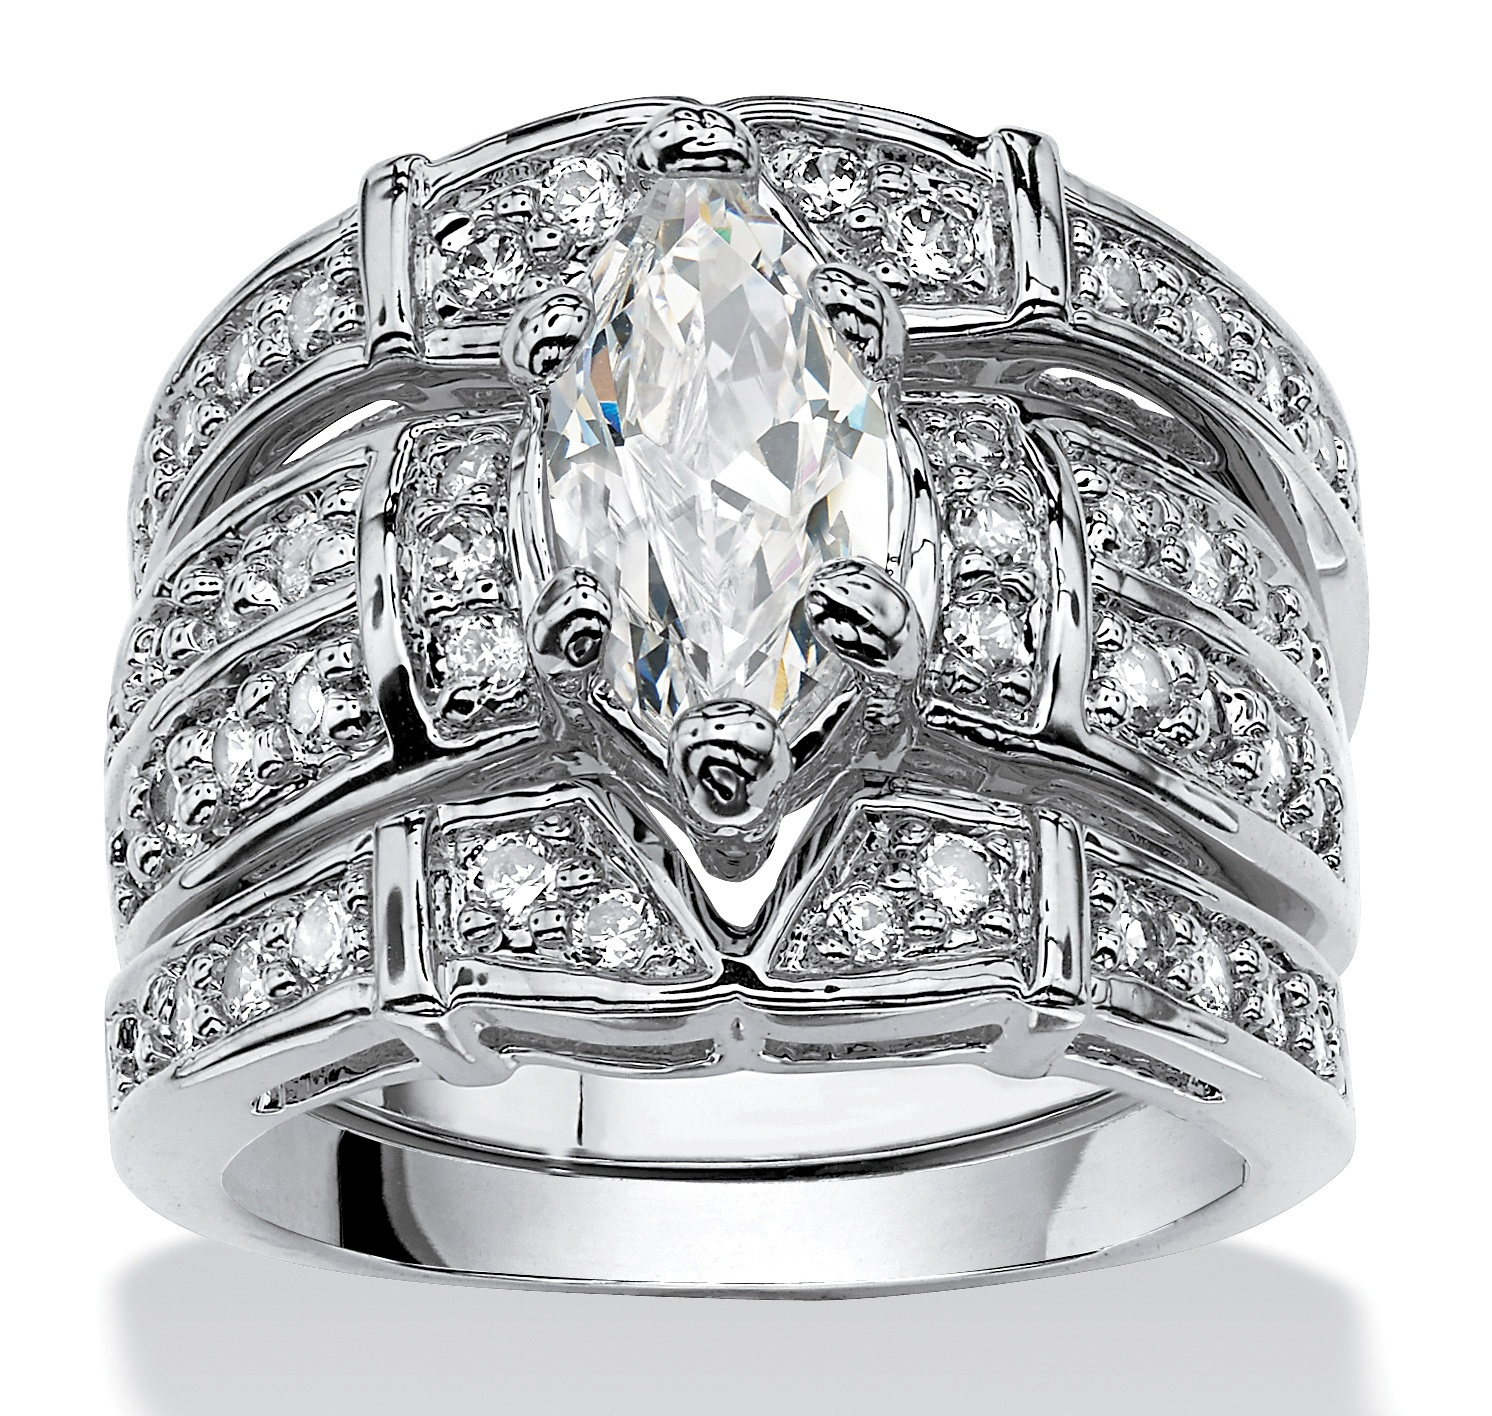 3.05 TCW Marquise-Cut Cubic Zirconia Silvertone Bridal Engagement Ring Wedding Band Set